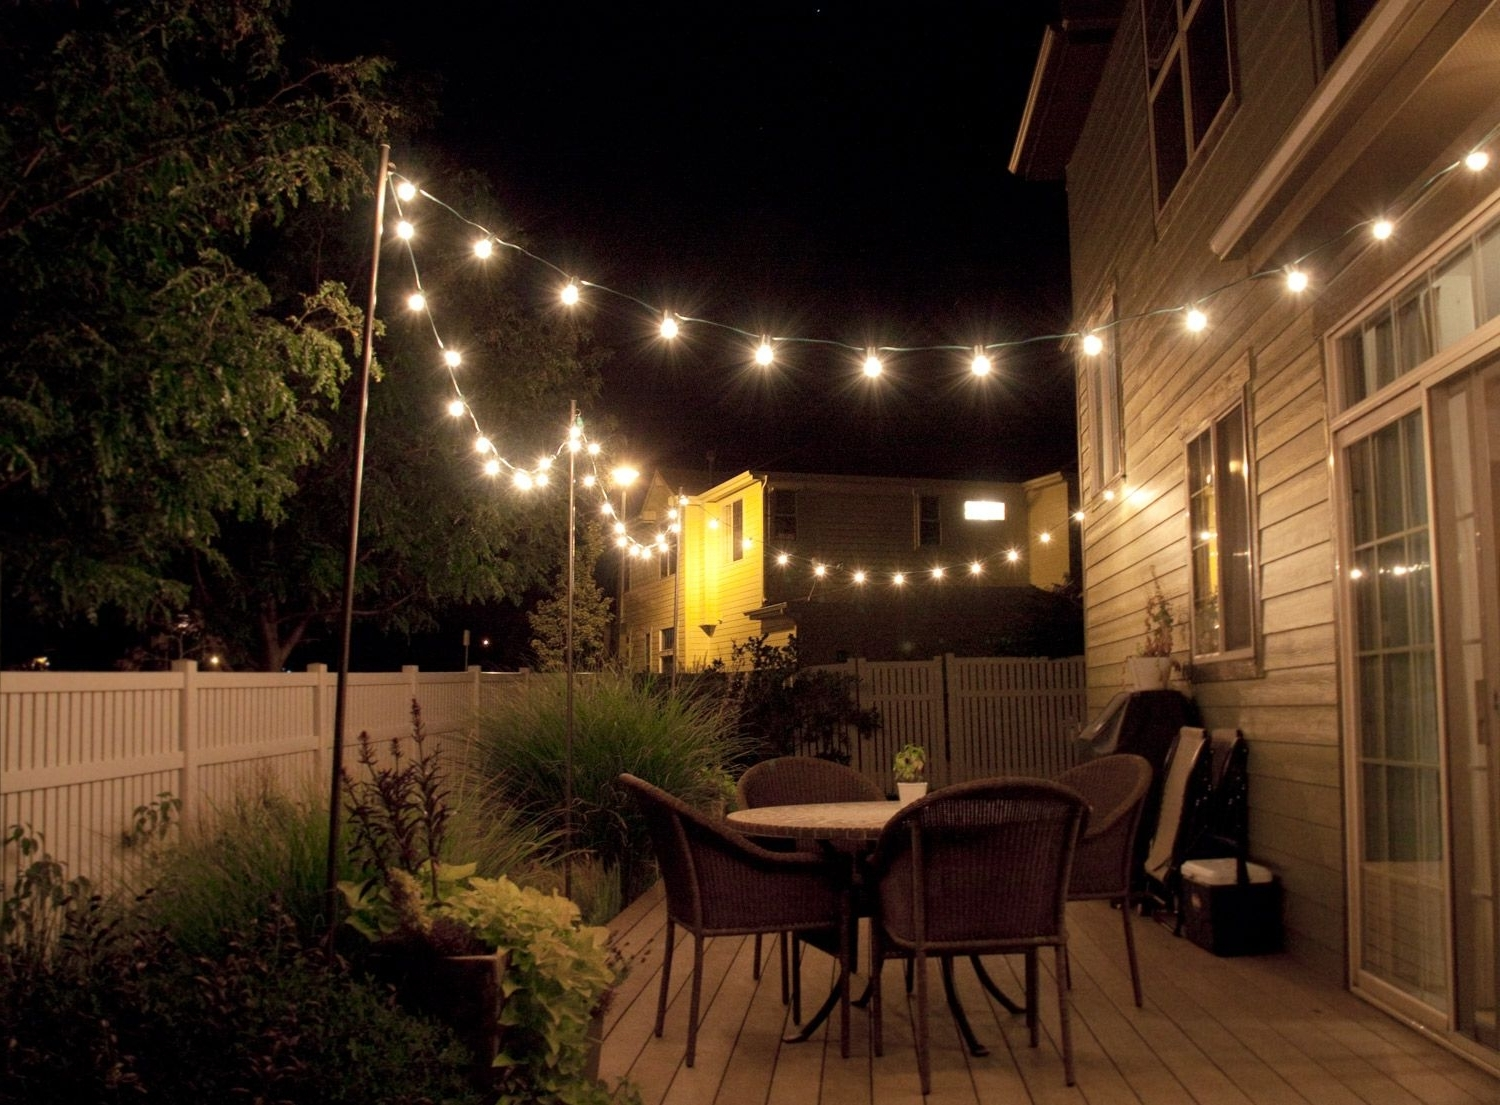 Well Liked Homemade Outdoor Hanging Lights Intended For How To Make Inexpensive Poles To Hang String Lights On – Café Style (View 20 of 20)